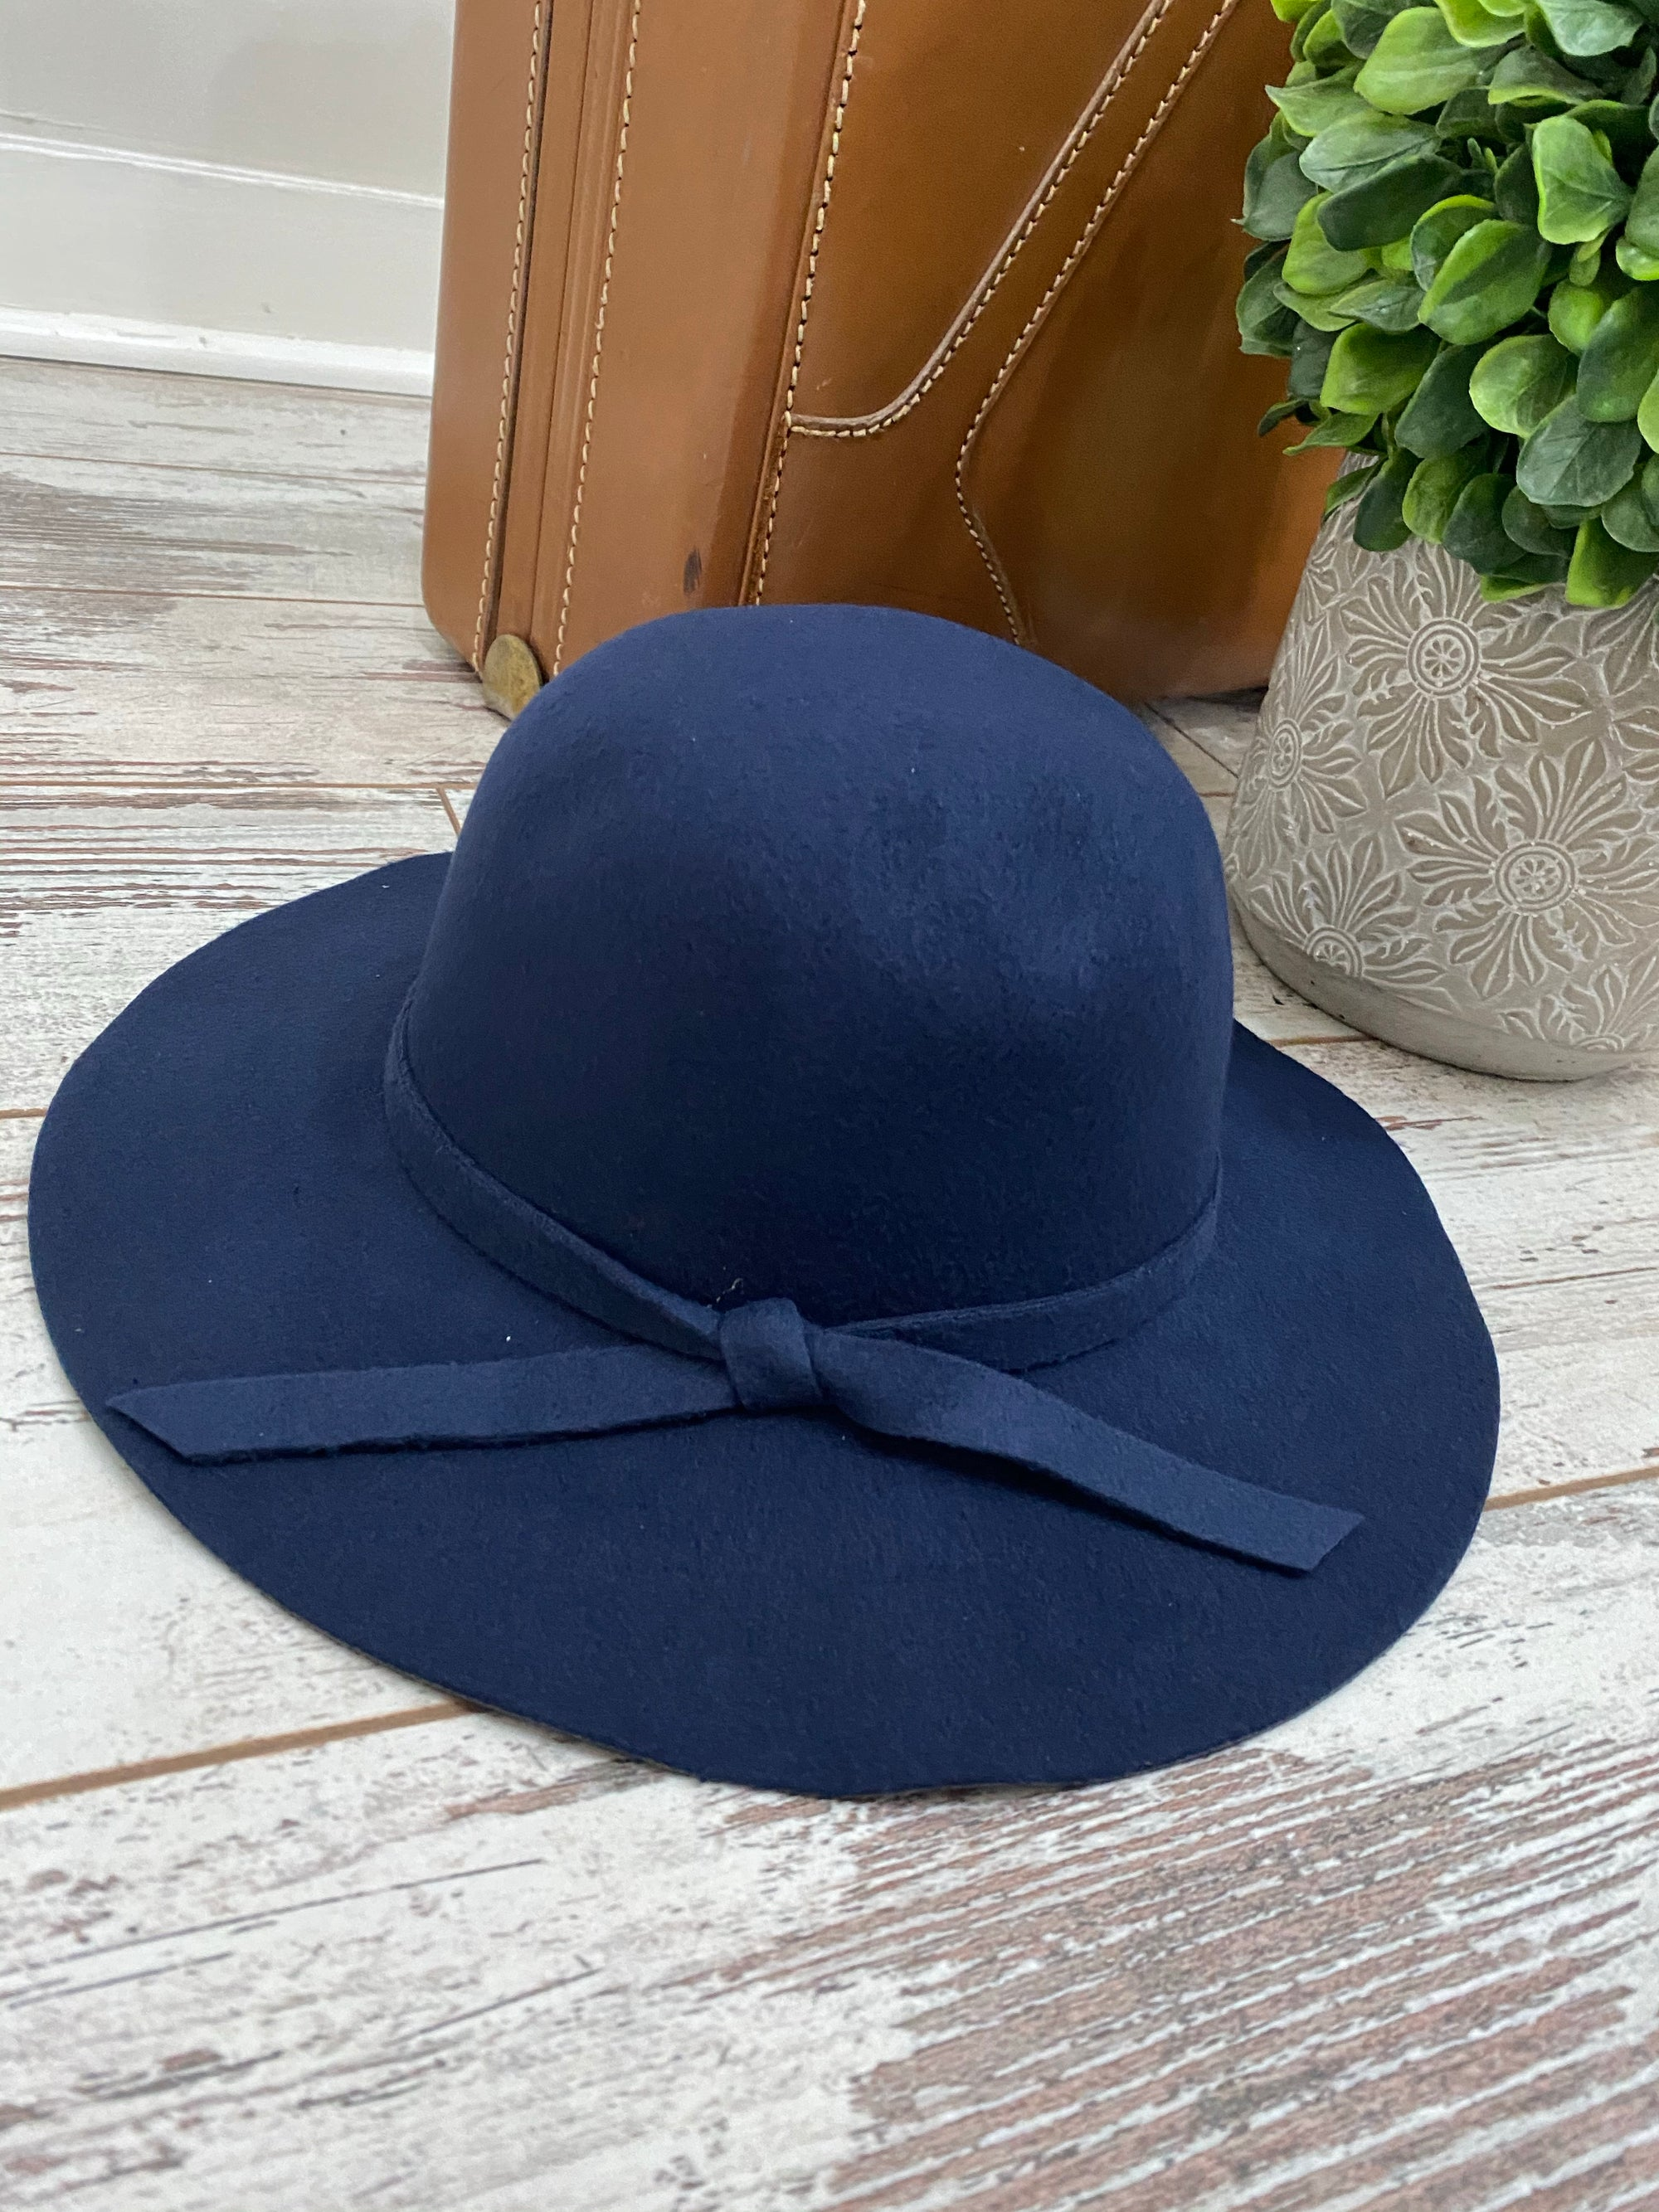 Felt Floppy Hat - Navy Blue